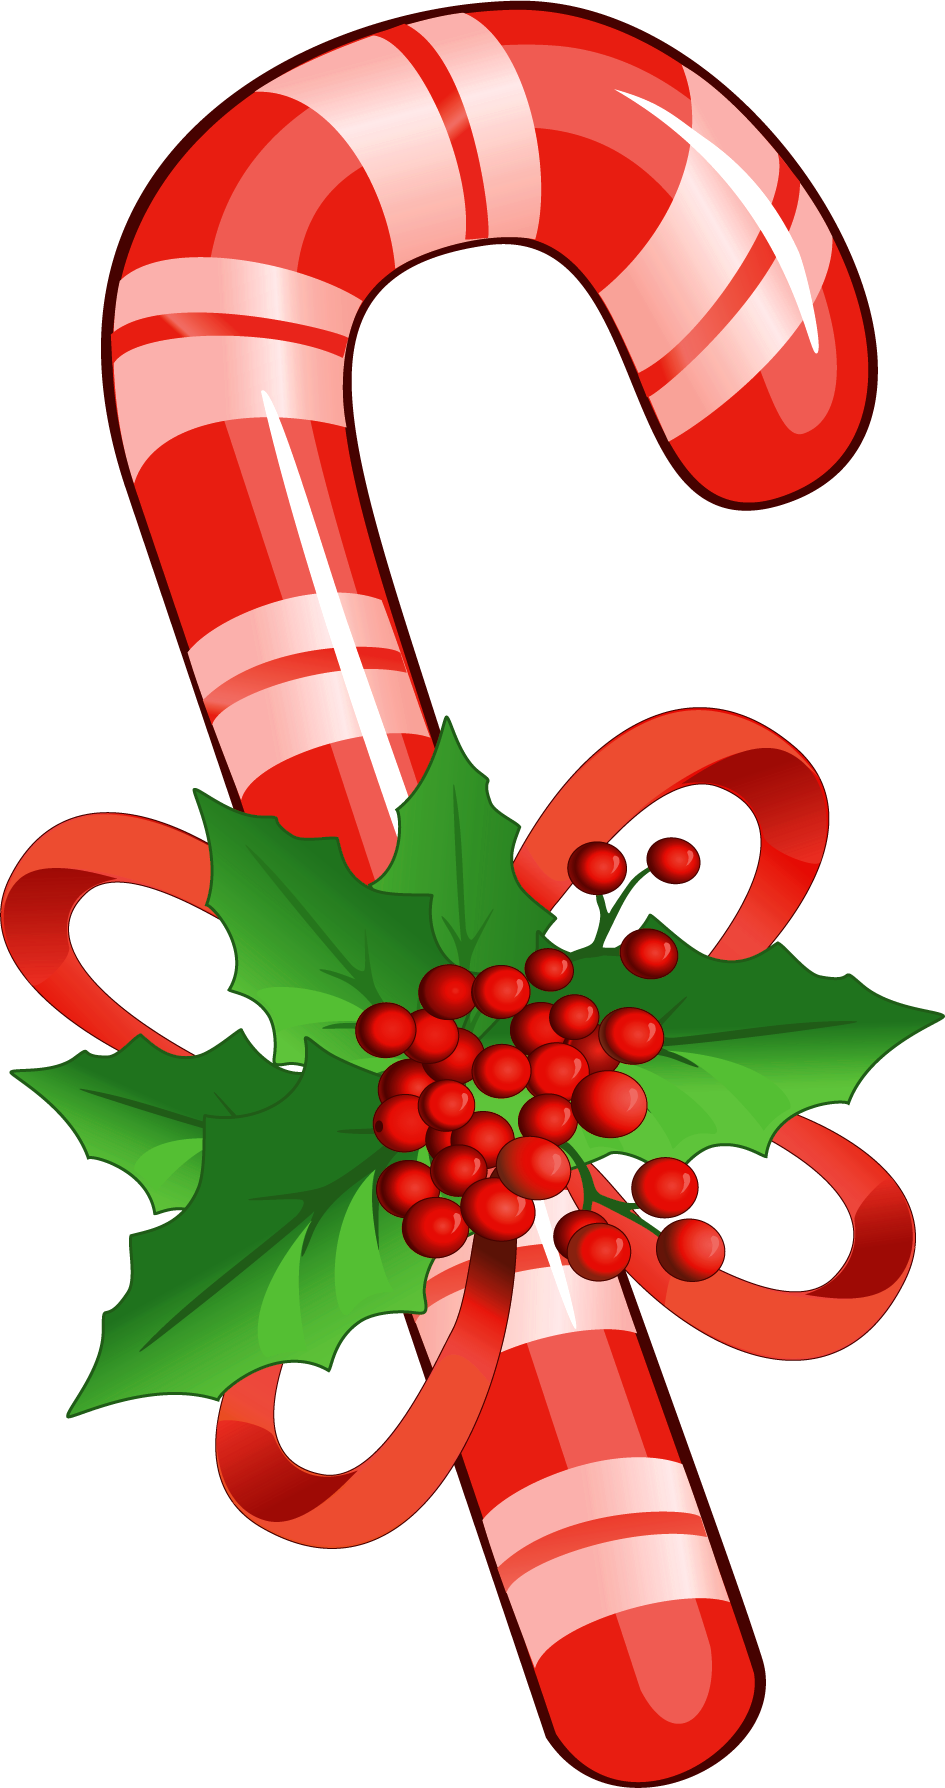 Candy Cane clipart transparent background With BBCpersian7 png background image